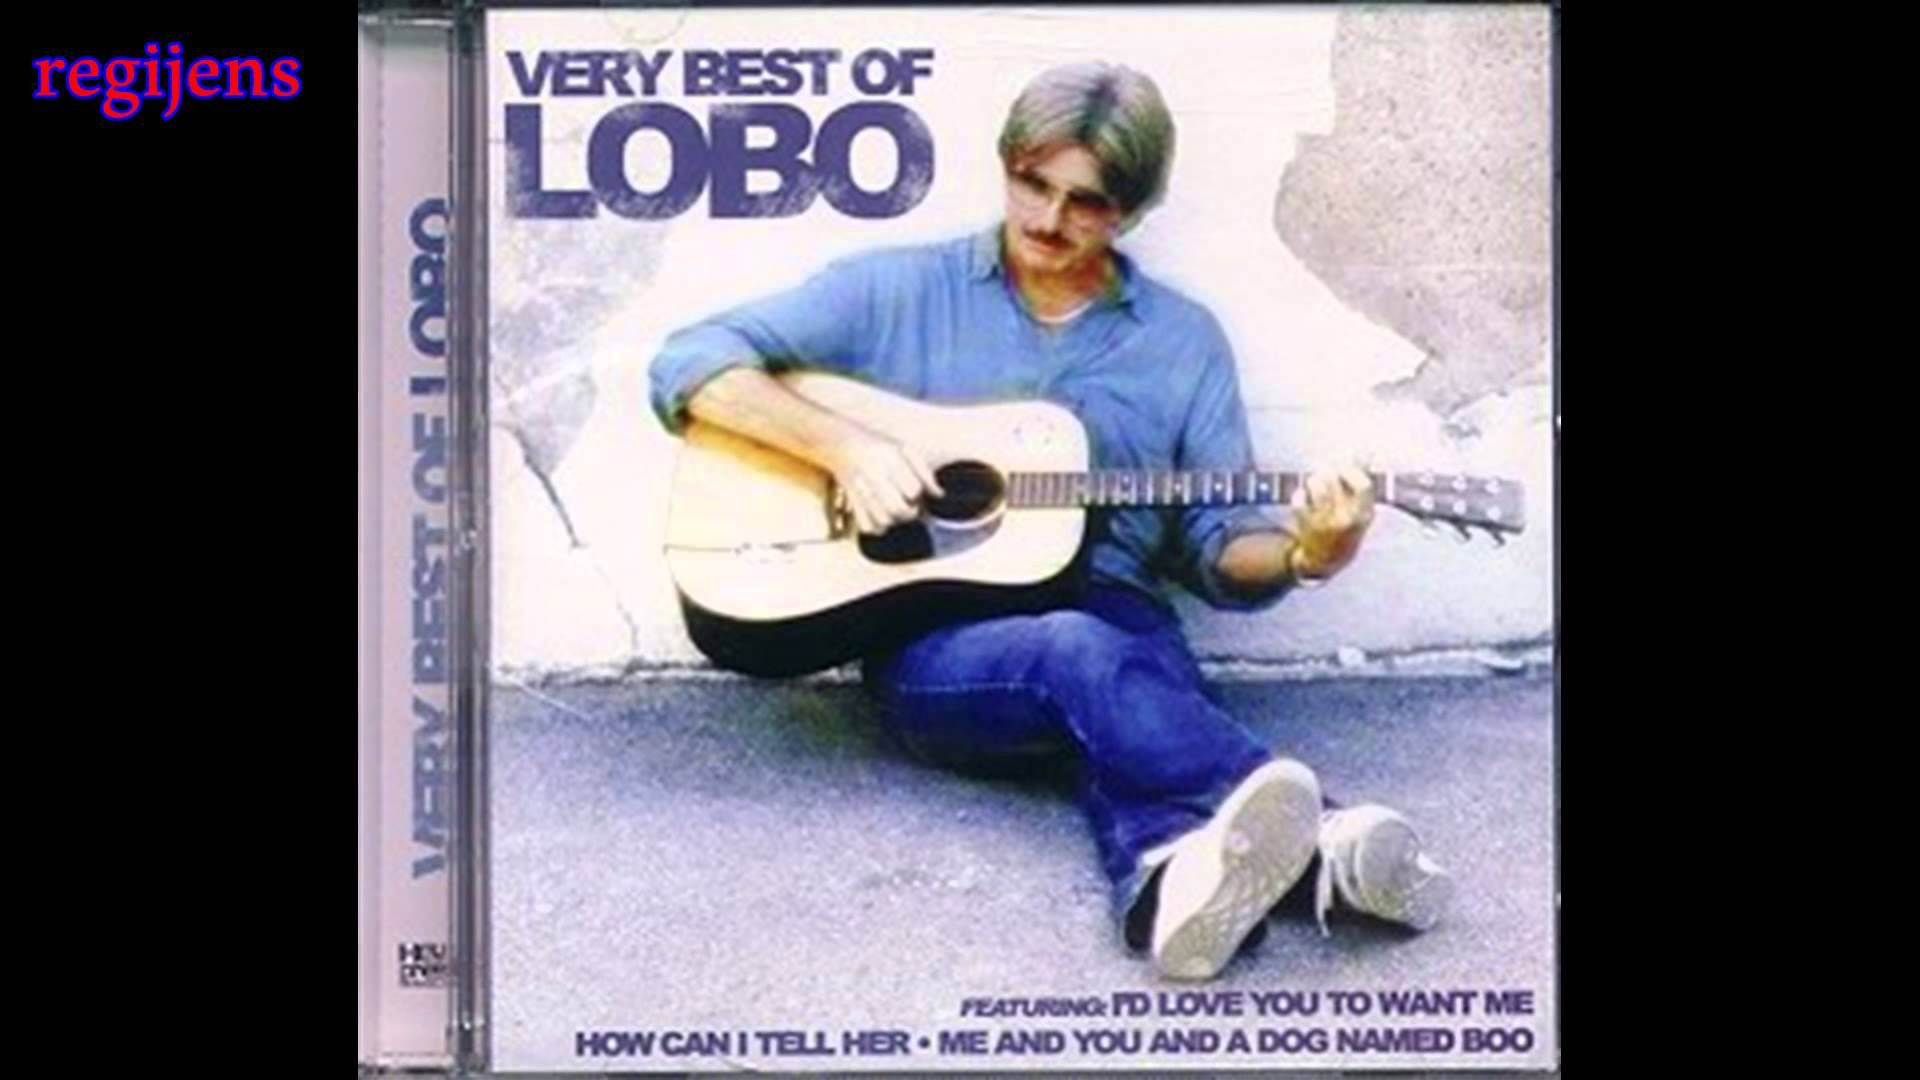 Very best hits collection of LOBO (audio) HQ HD full album